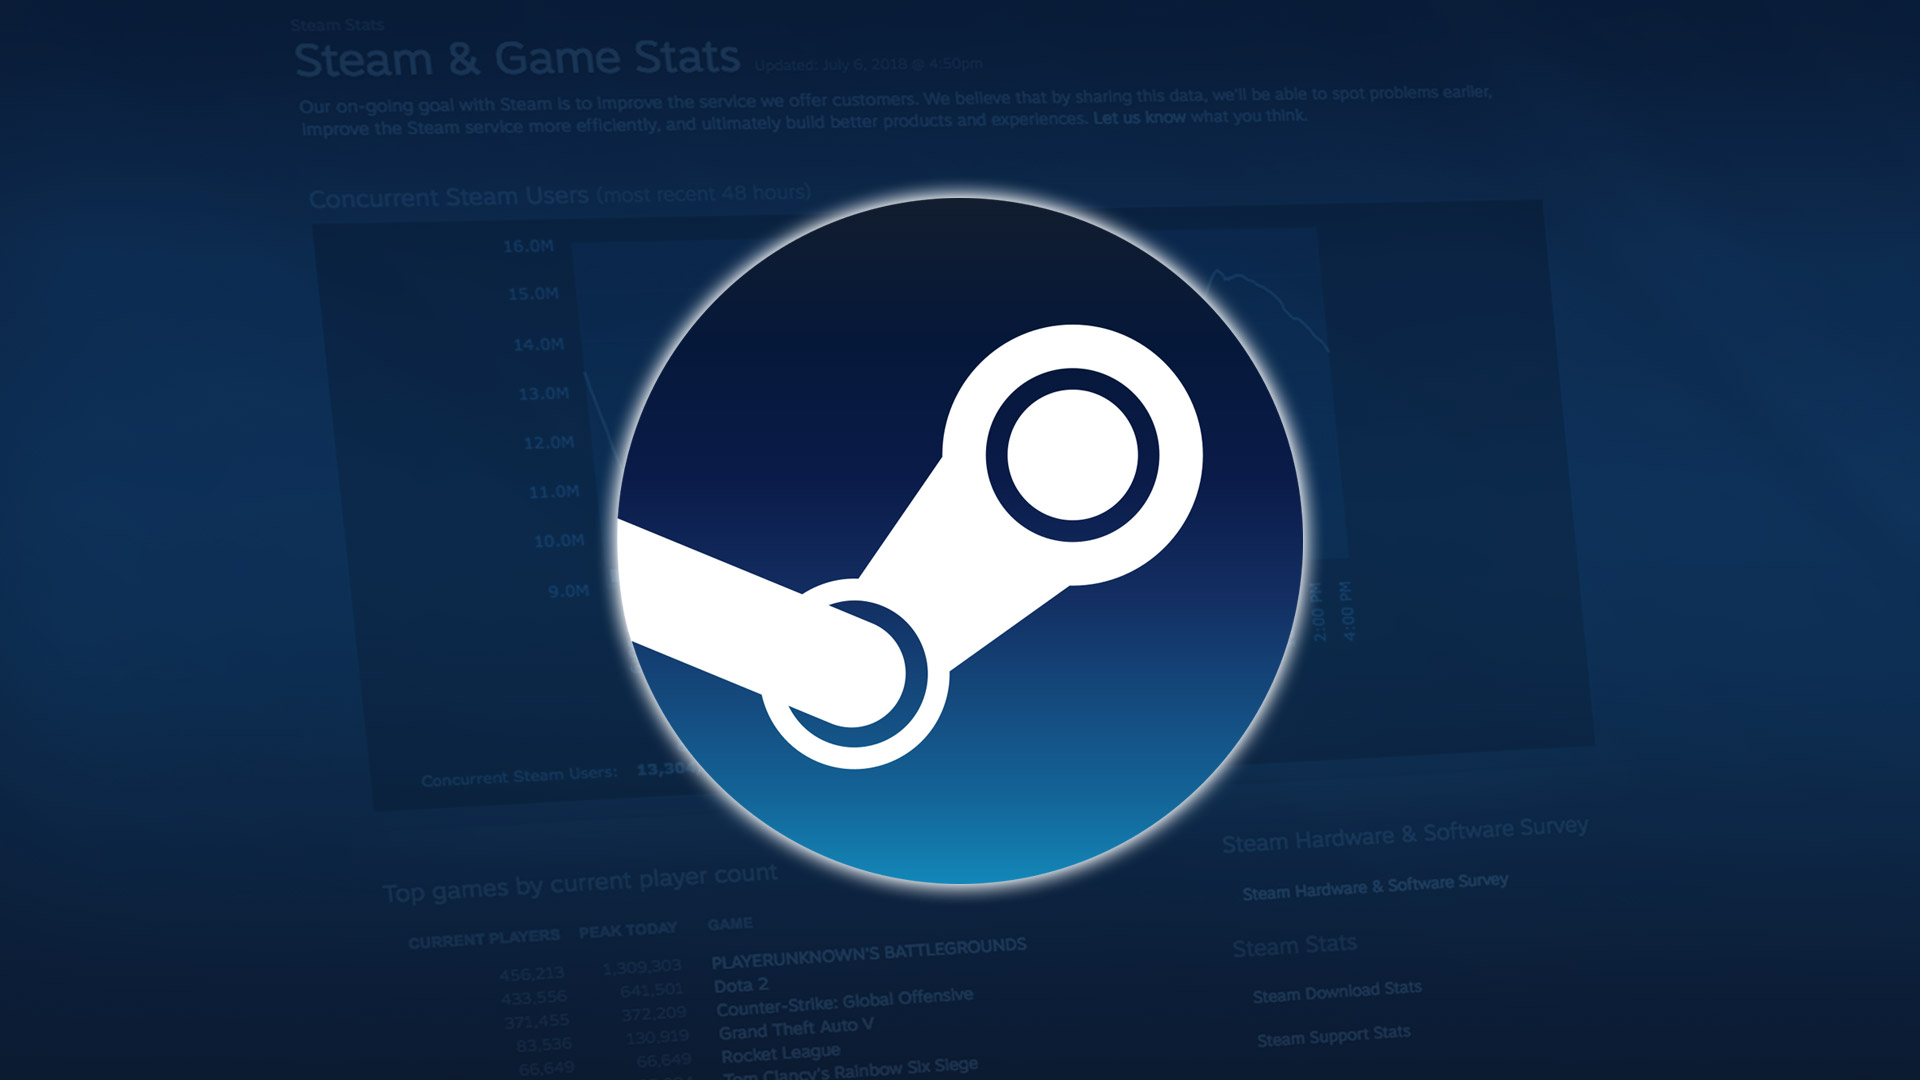 Valve: Rape Day will not be released on Steam